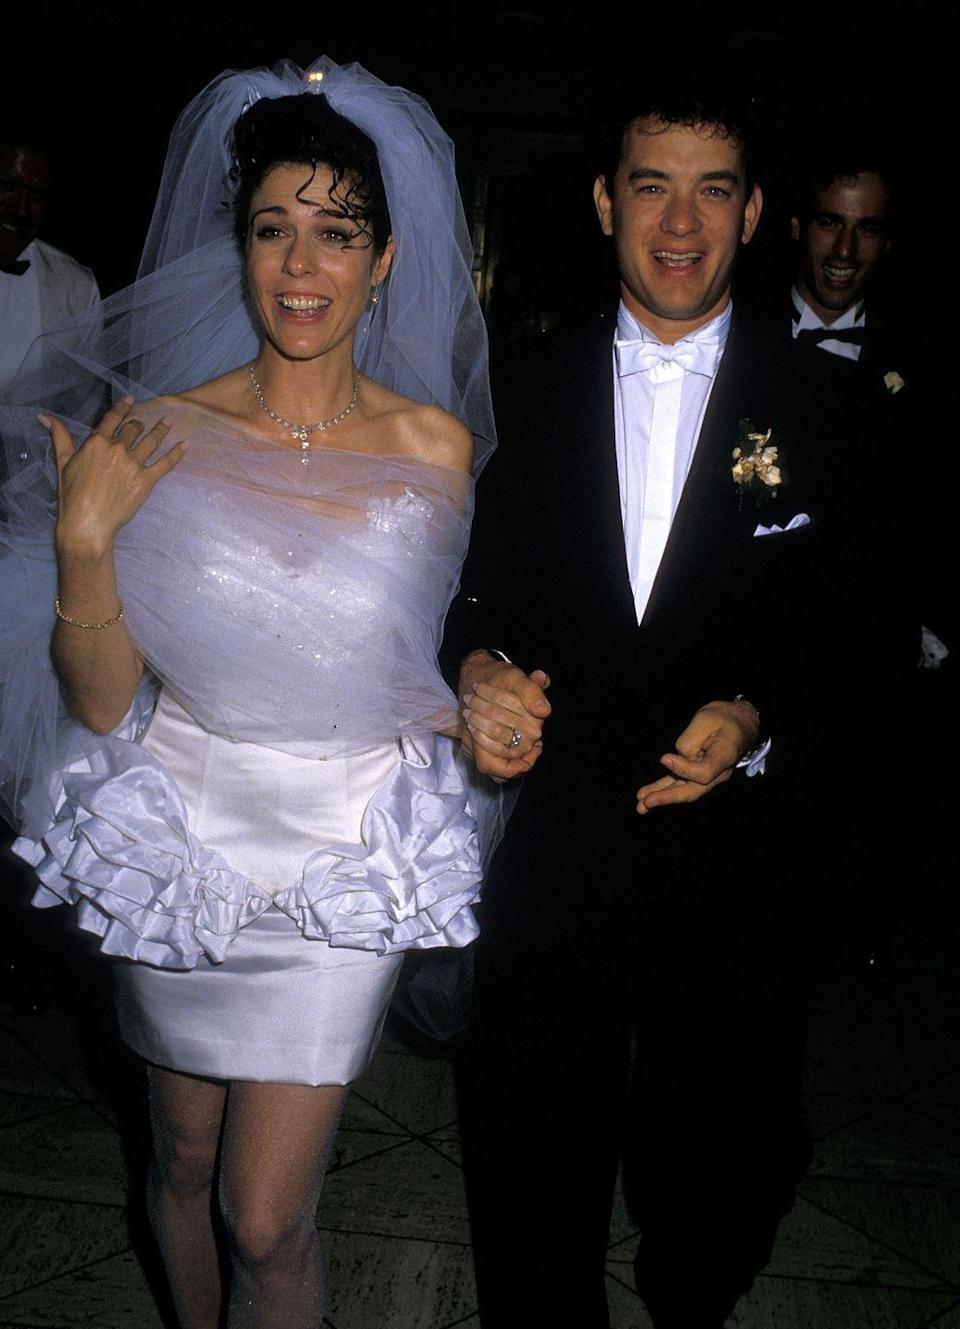 <p>The longevity of Rita Wilson and Tom Hanks's 30-year marriage is one of the most impressive in Hollywood. Hanks first set eyes on Wilson when he was 16 and watched her in an episode of <em>The Brady Bunch</em> in 1972. But they didn't actually meet until 1981, on the set of the ABC comedy <em>Bosom Buddie</em><em>s</em>. After Hanks divorced his first wife in 1987, the two married on April 30, 1988, at Rex's in Los Angeles, California, and have been together ever since.</p>